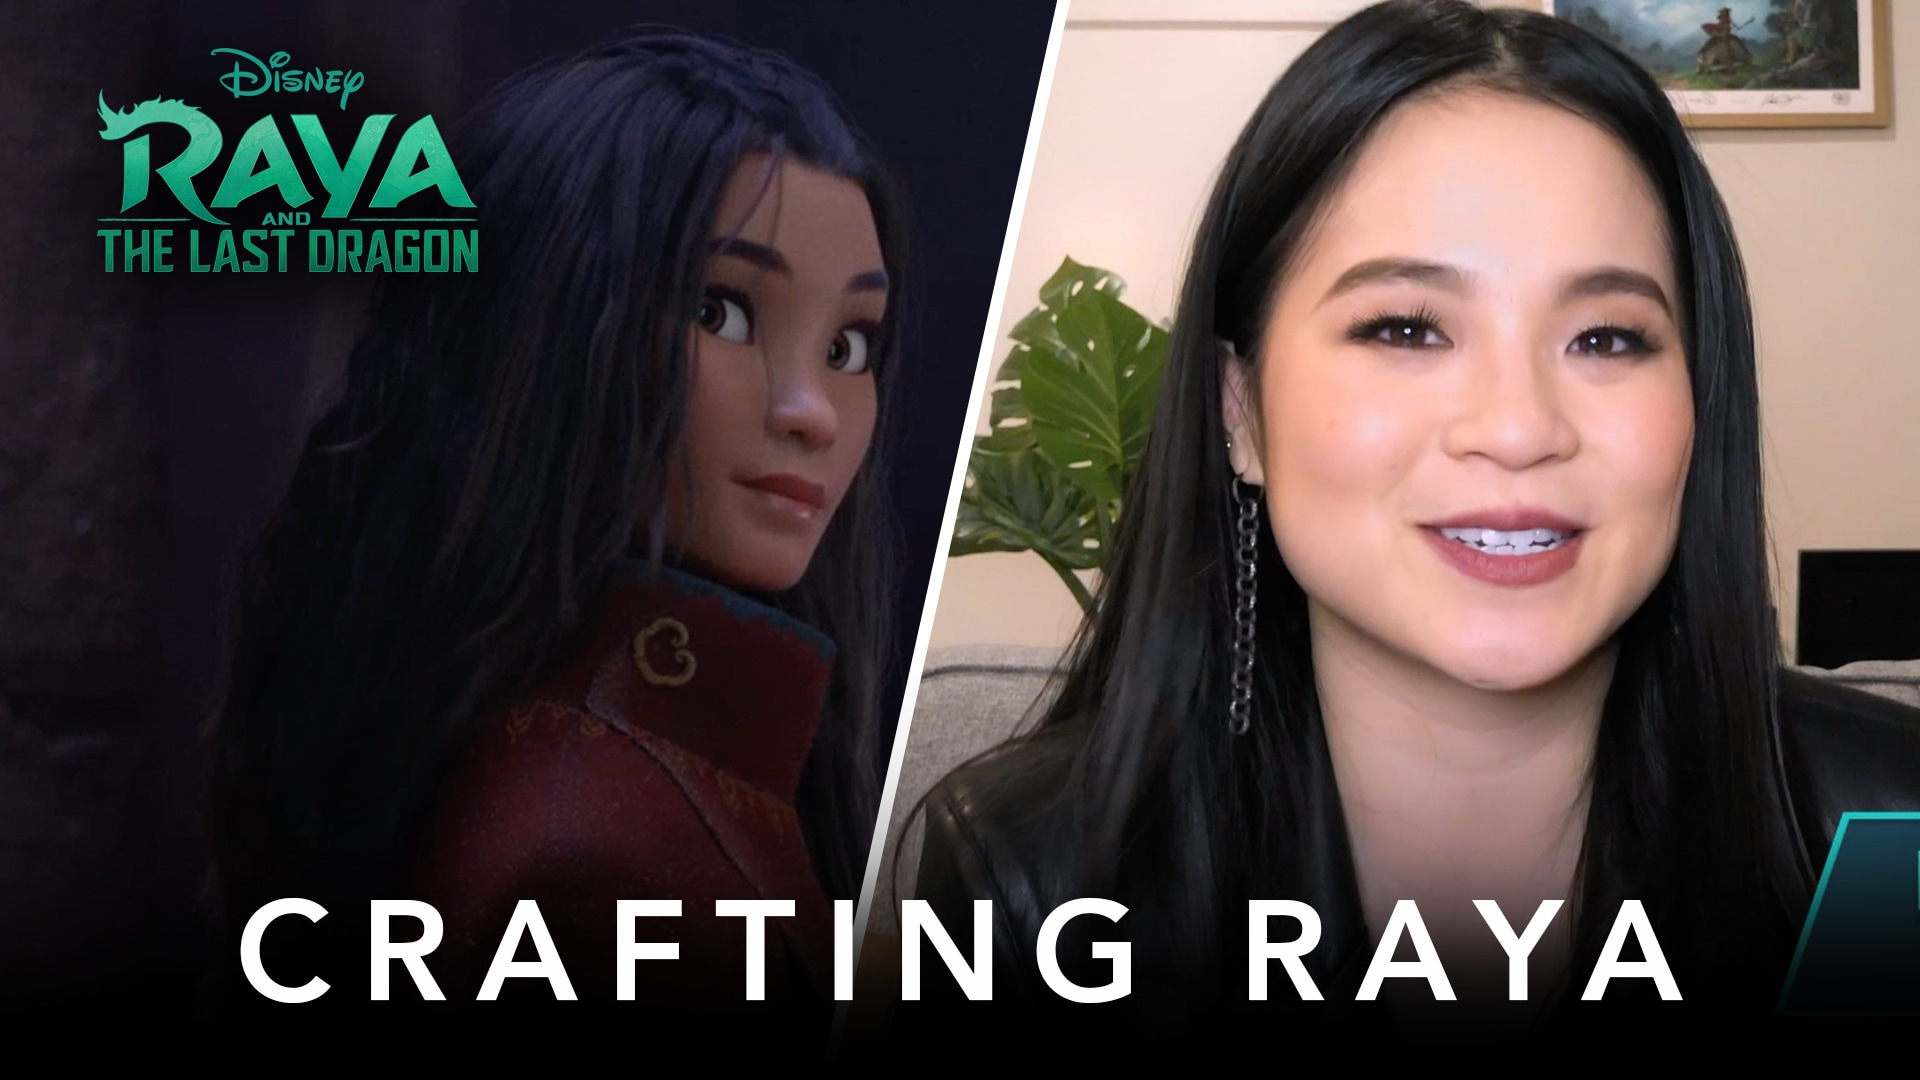 Crafting Raya Featurette | Raya and the Last Dragon